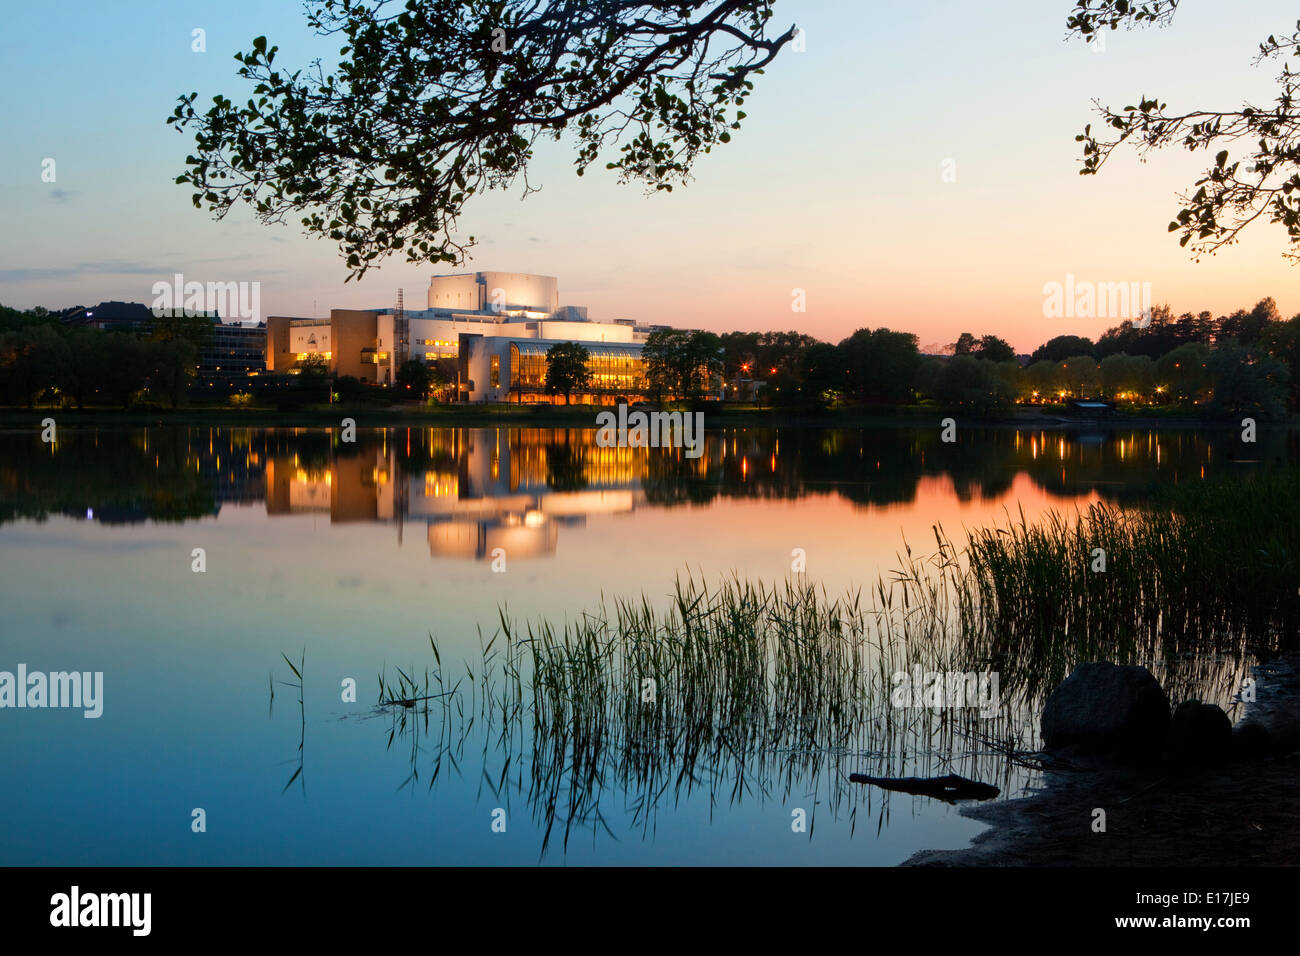 The Finnish National Opera House in Helsinki - Stock Image